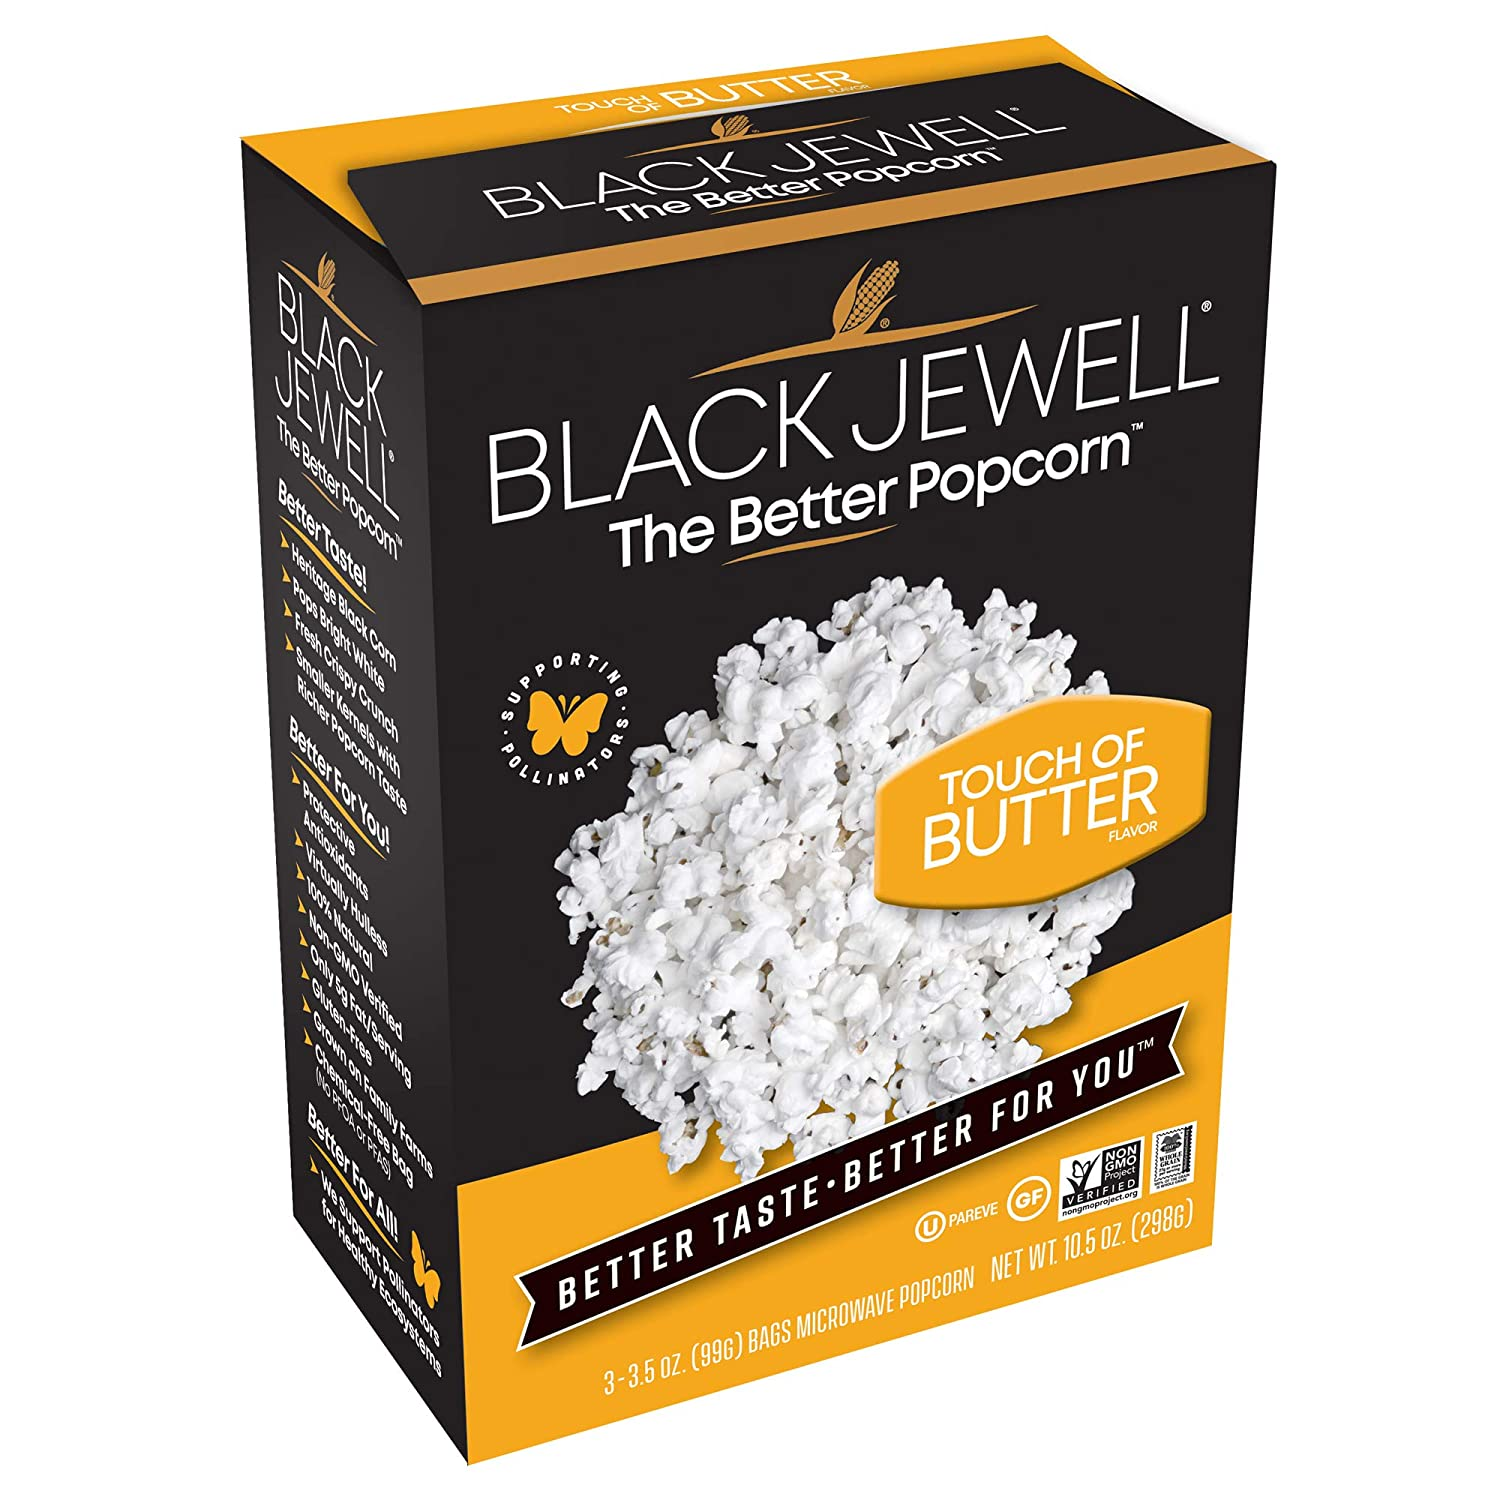 Black Jewell Gourmet Microwave Sales Popcorn Touch 10.5 Ou of Butter Financial sales sale